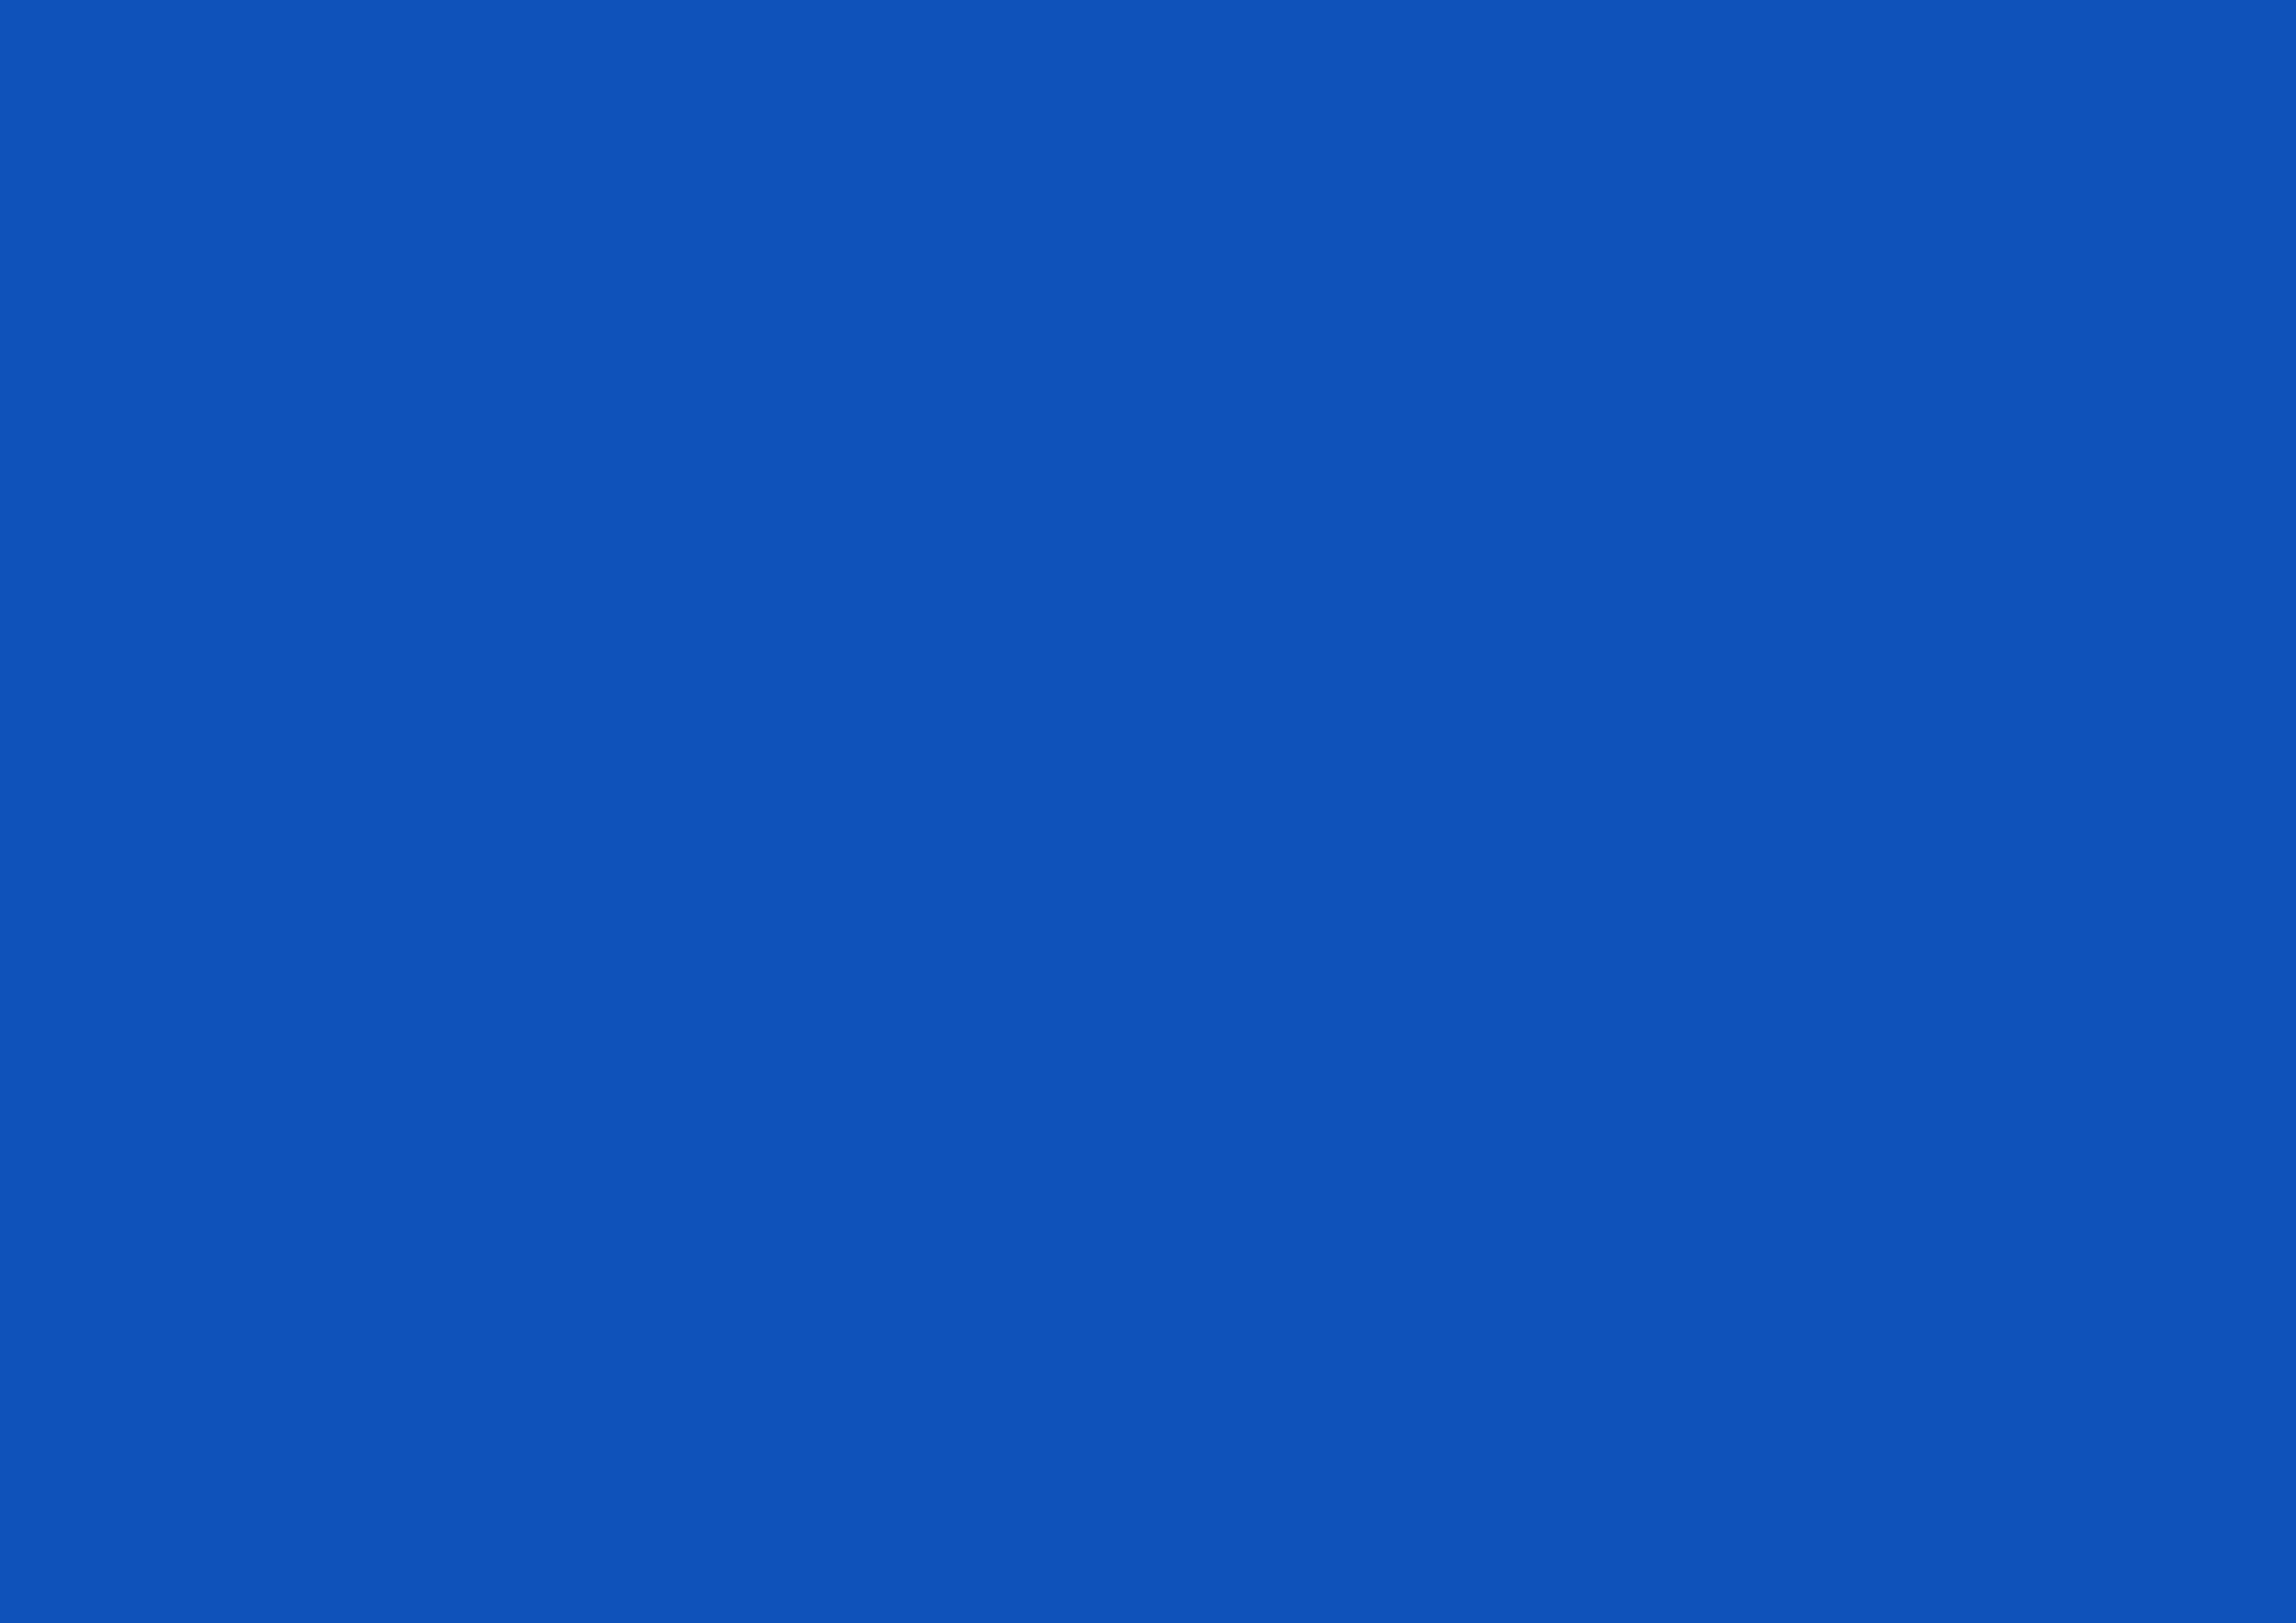 3508x2480 Sapphire Solid Color Background